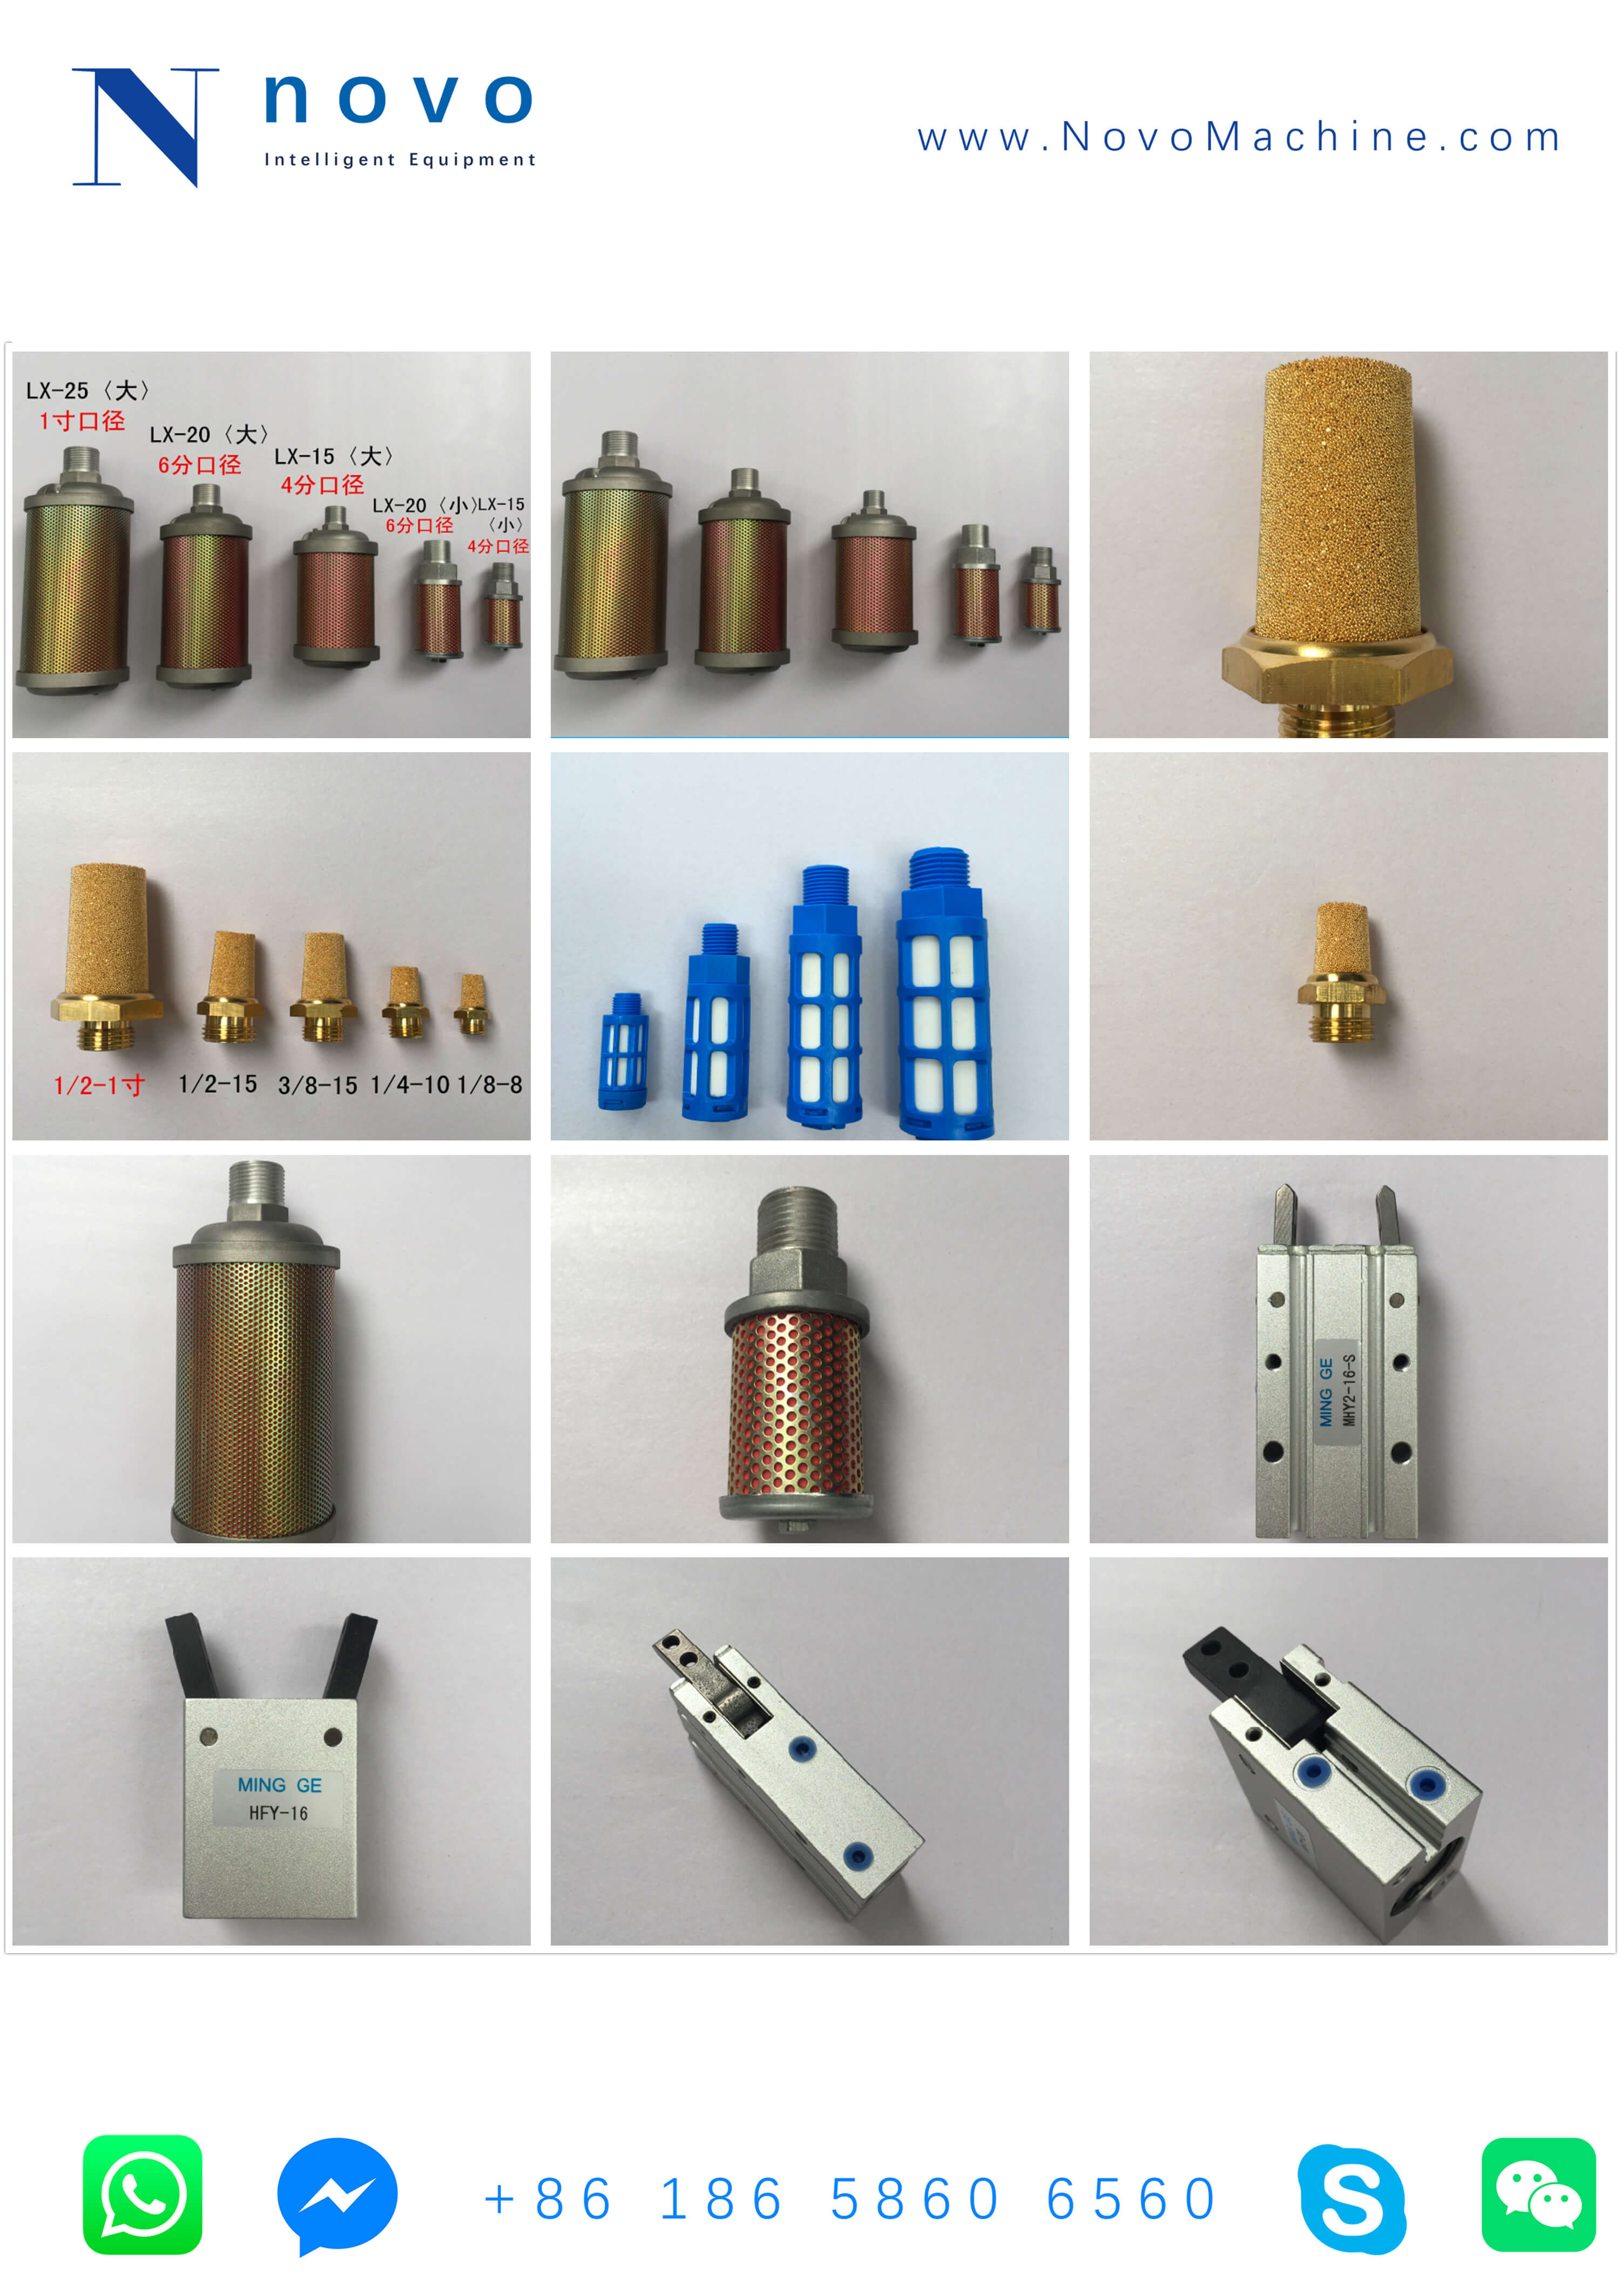 Silencer and robot hand spare parts for Novo PET bottle blowing molding machine